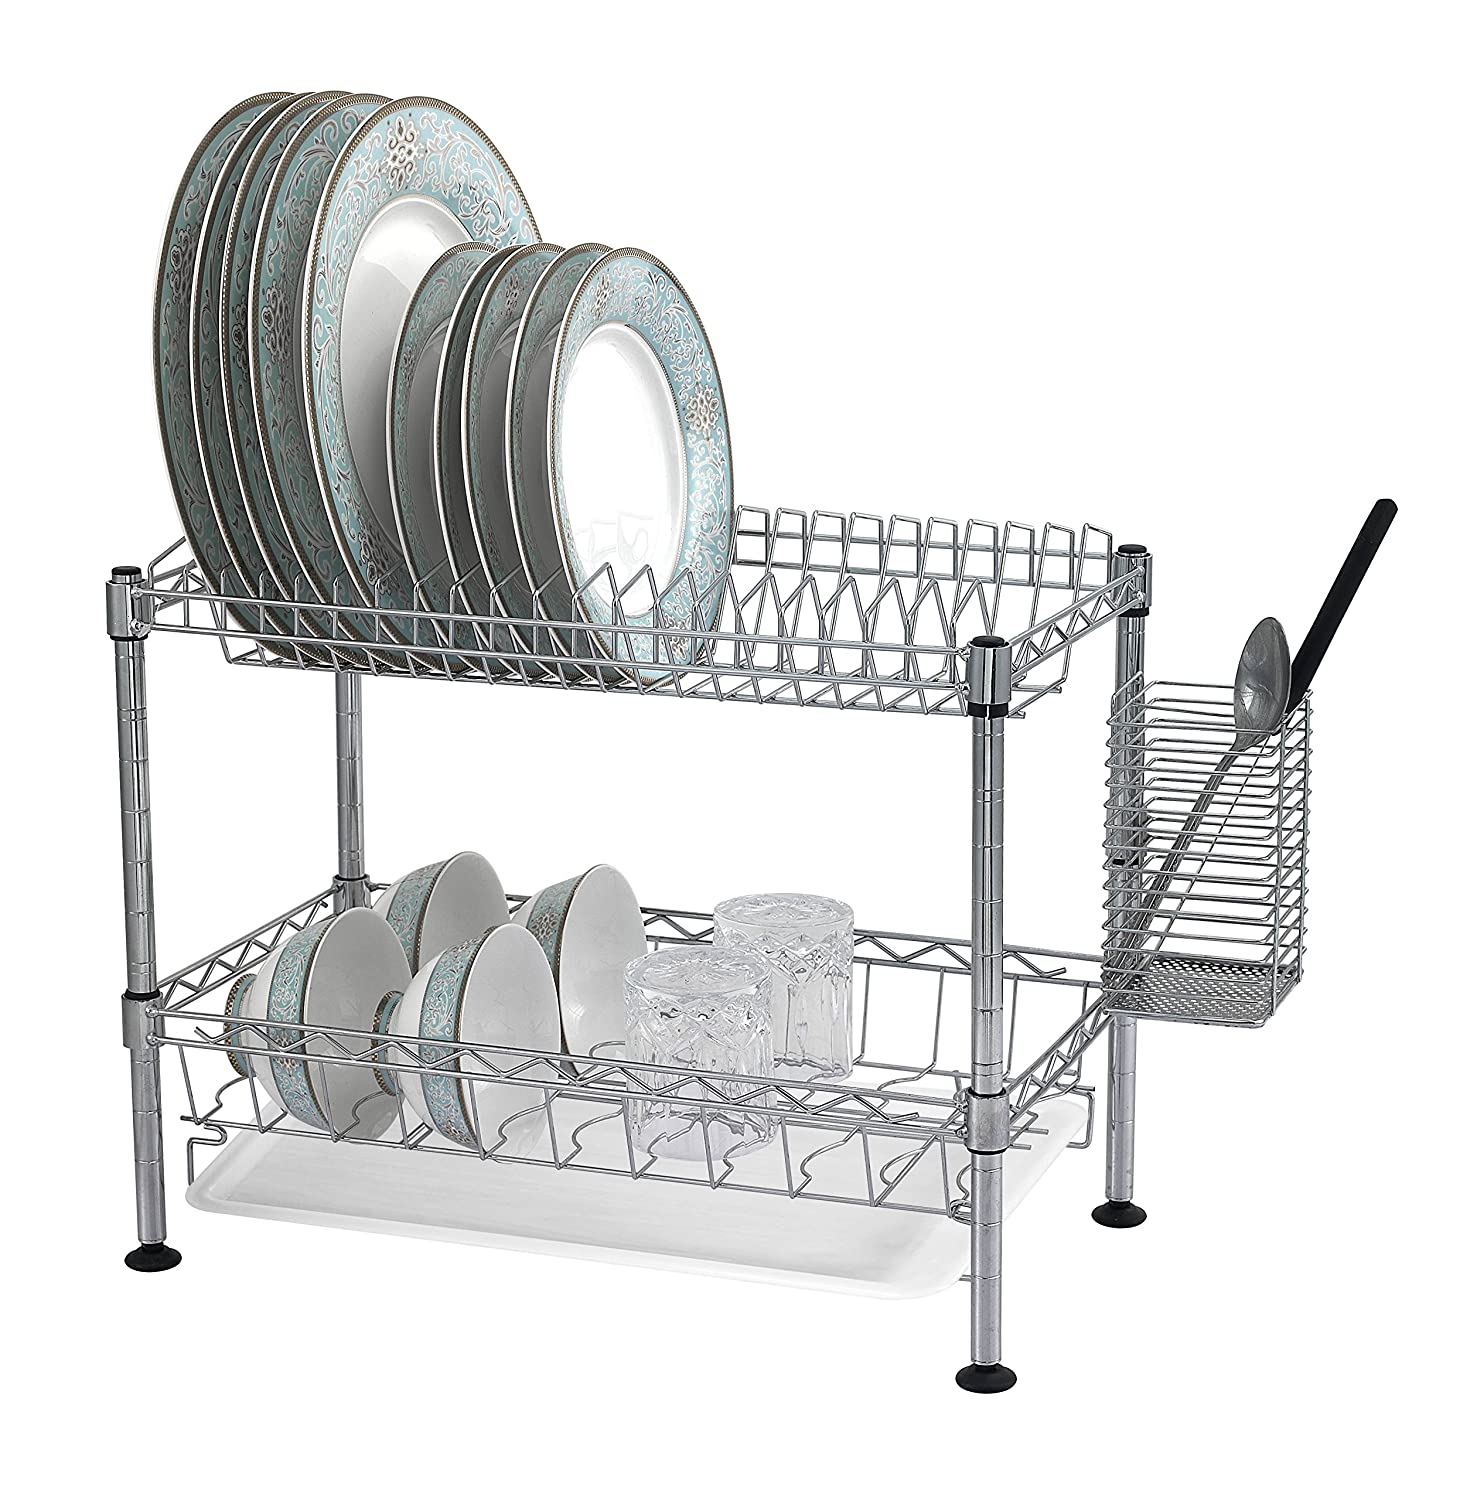 Sandusky Lee WDR101812 Two Tier Wire Dish Rack, Chrome